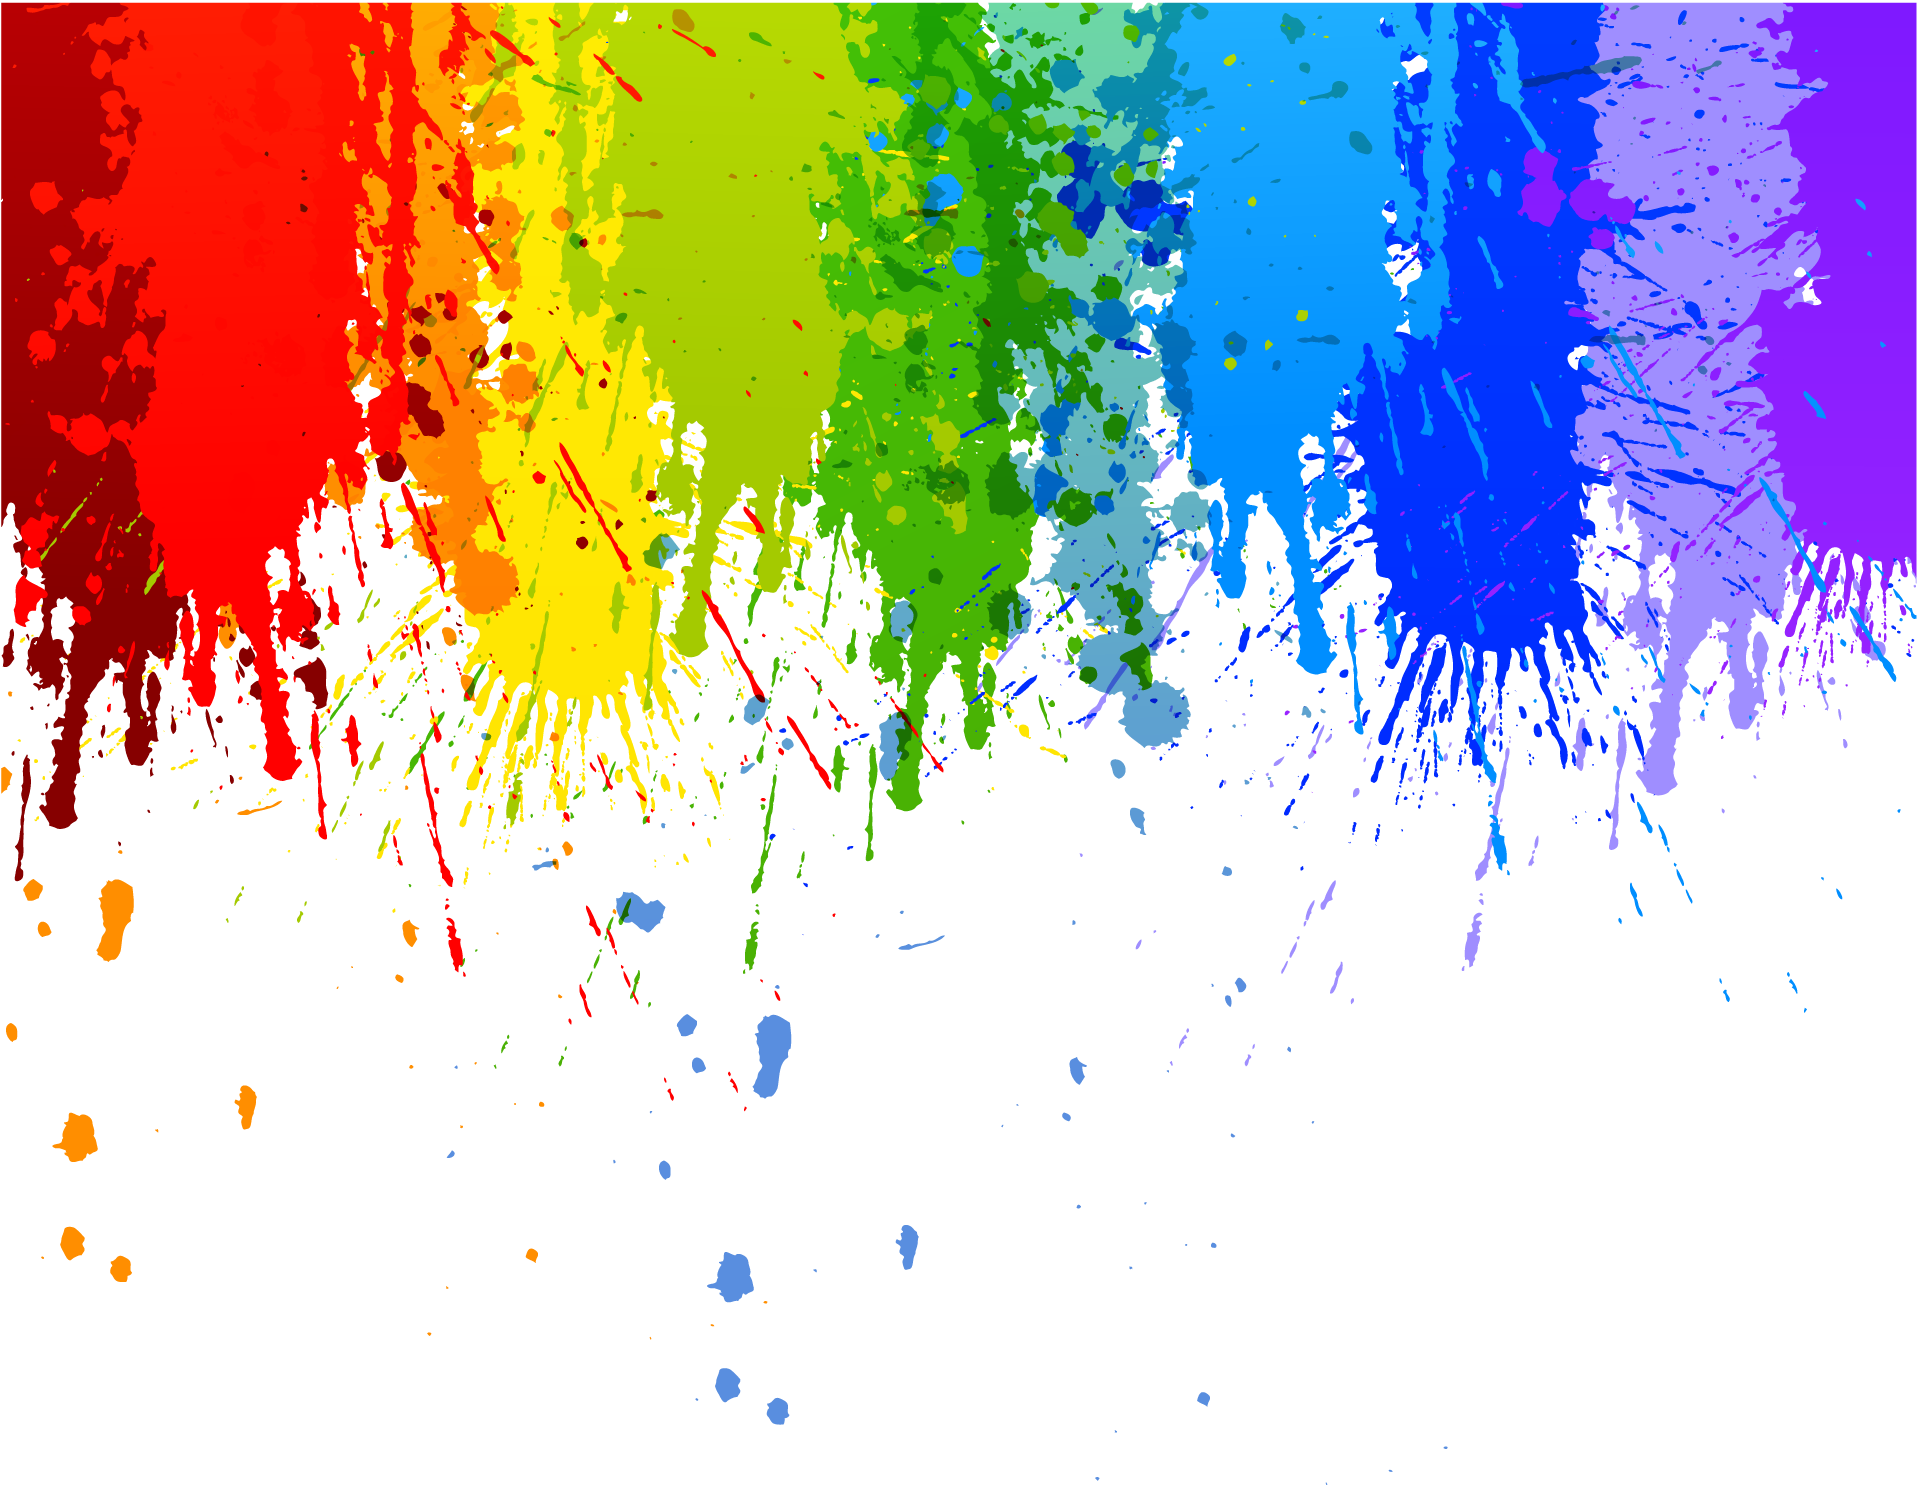 graffiti splatter png